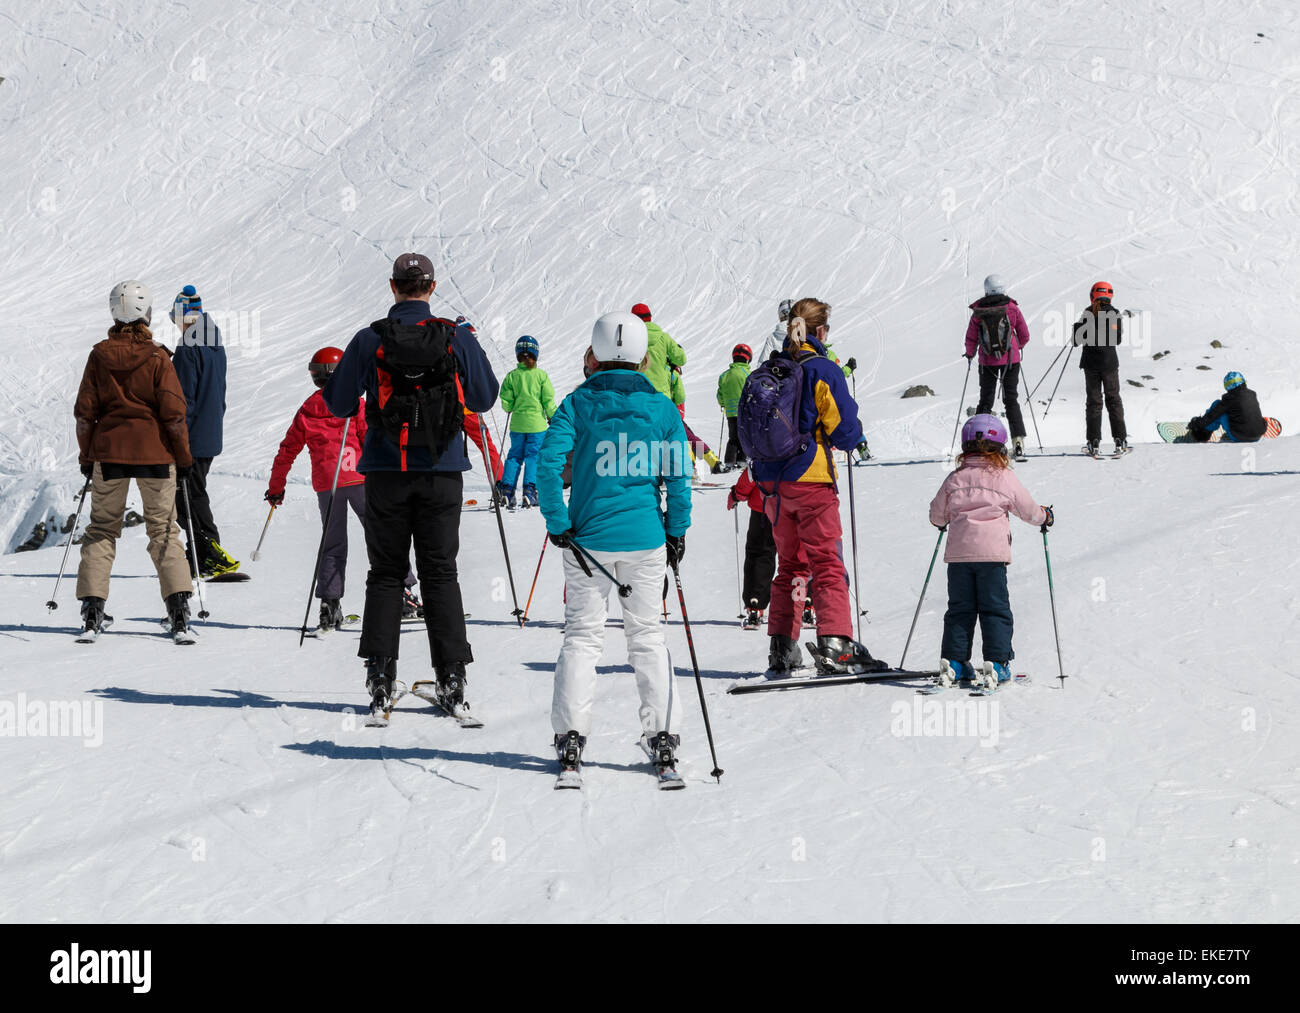 Group of skiers getting ready to descend a piste in the Swiss alps - Stock Image